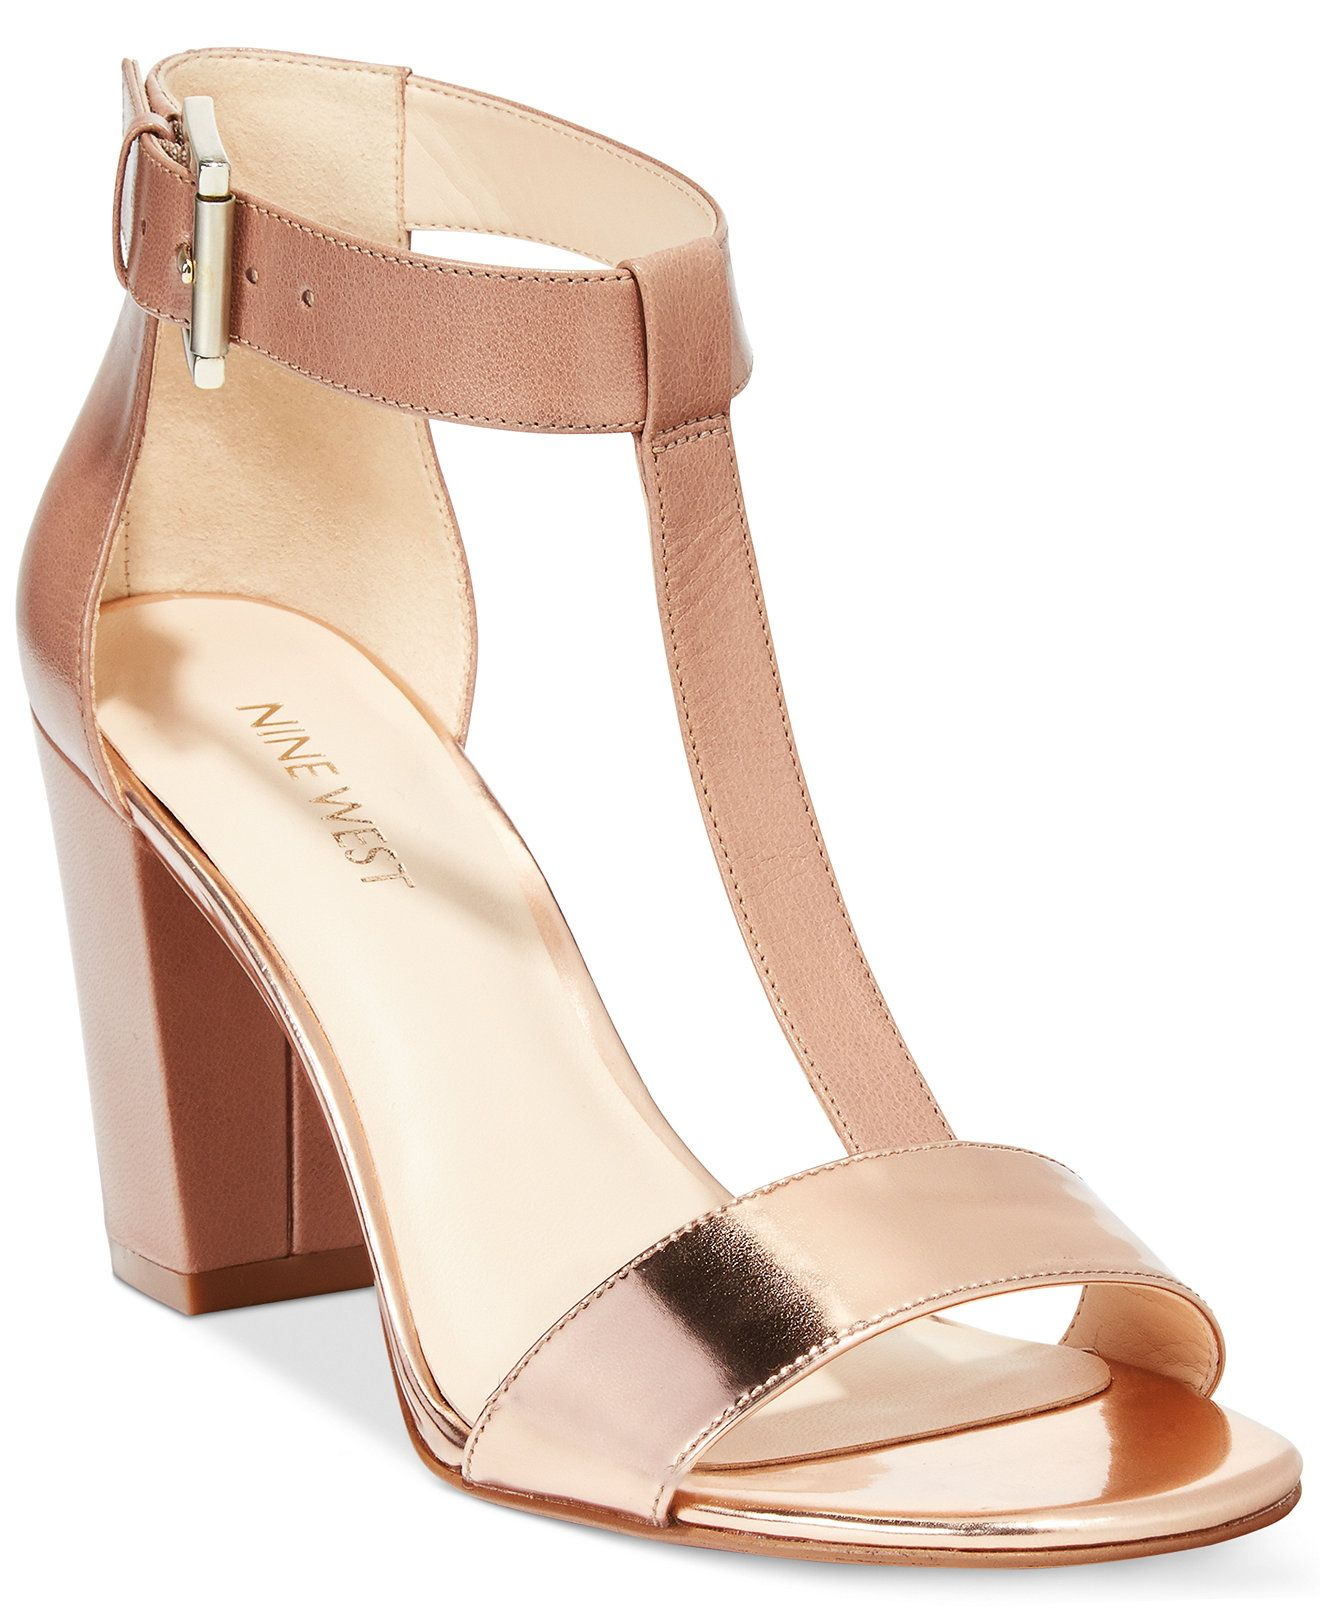 f876b7b86 Nine West Brannah Dress Sandals - Sandals - Shoes - Macy s